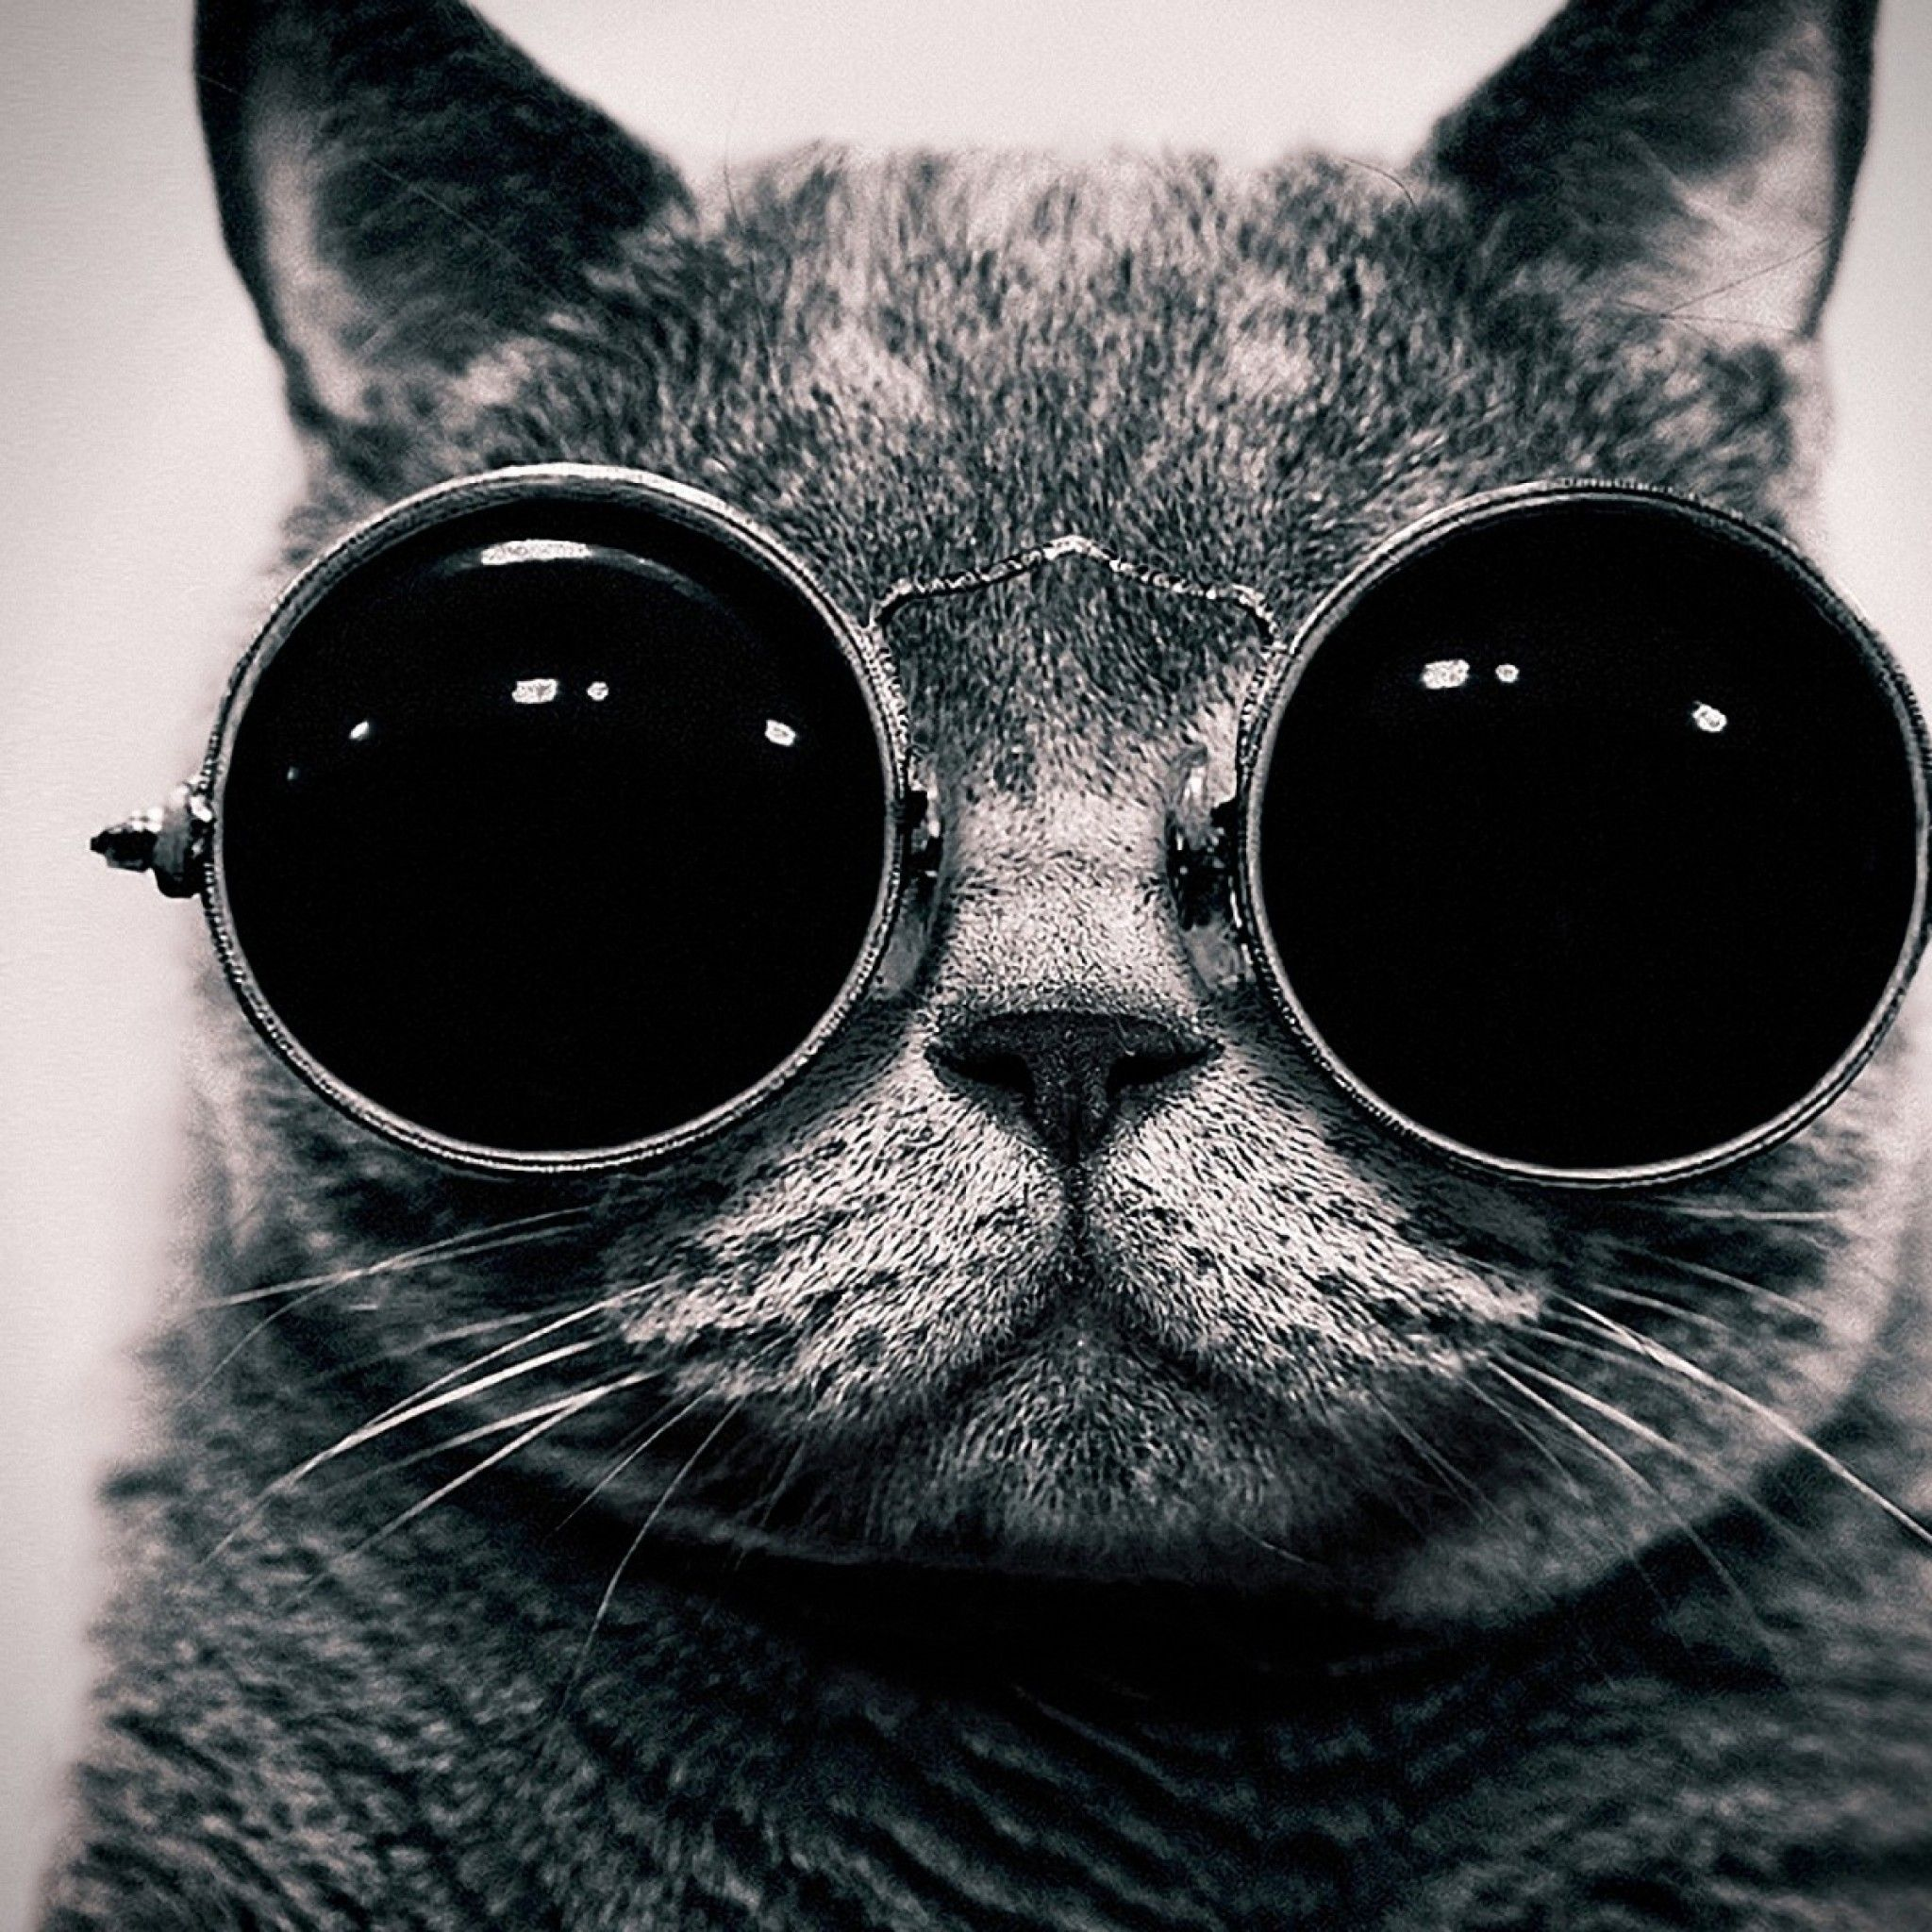 Space in Cats wallpaper ipad pictures best photo